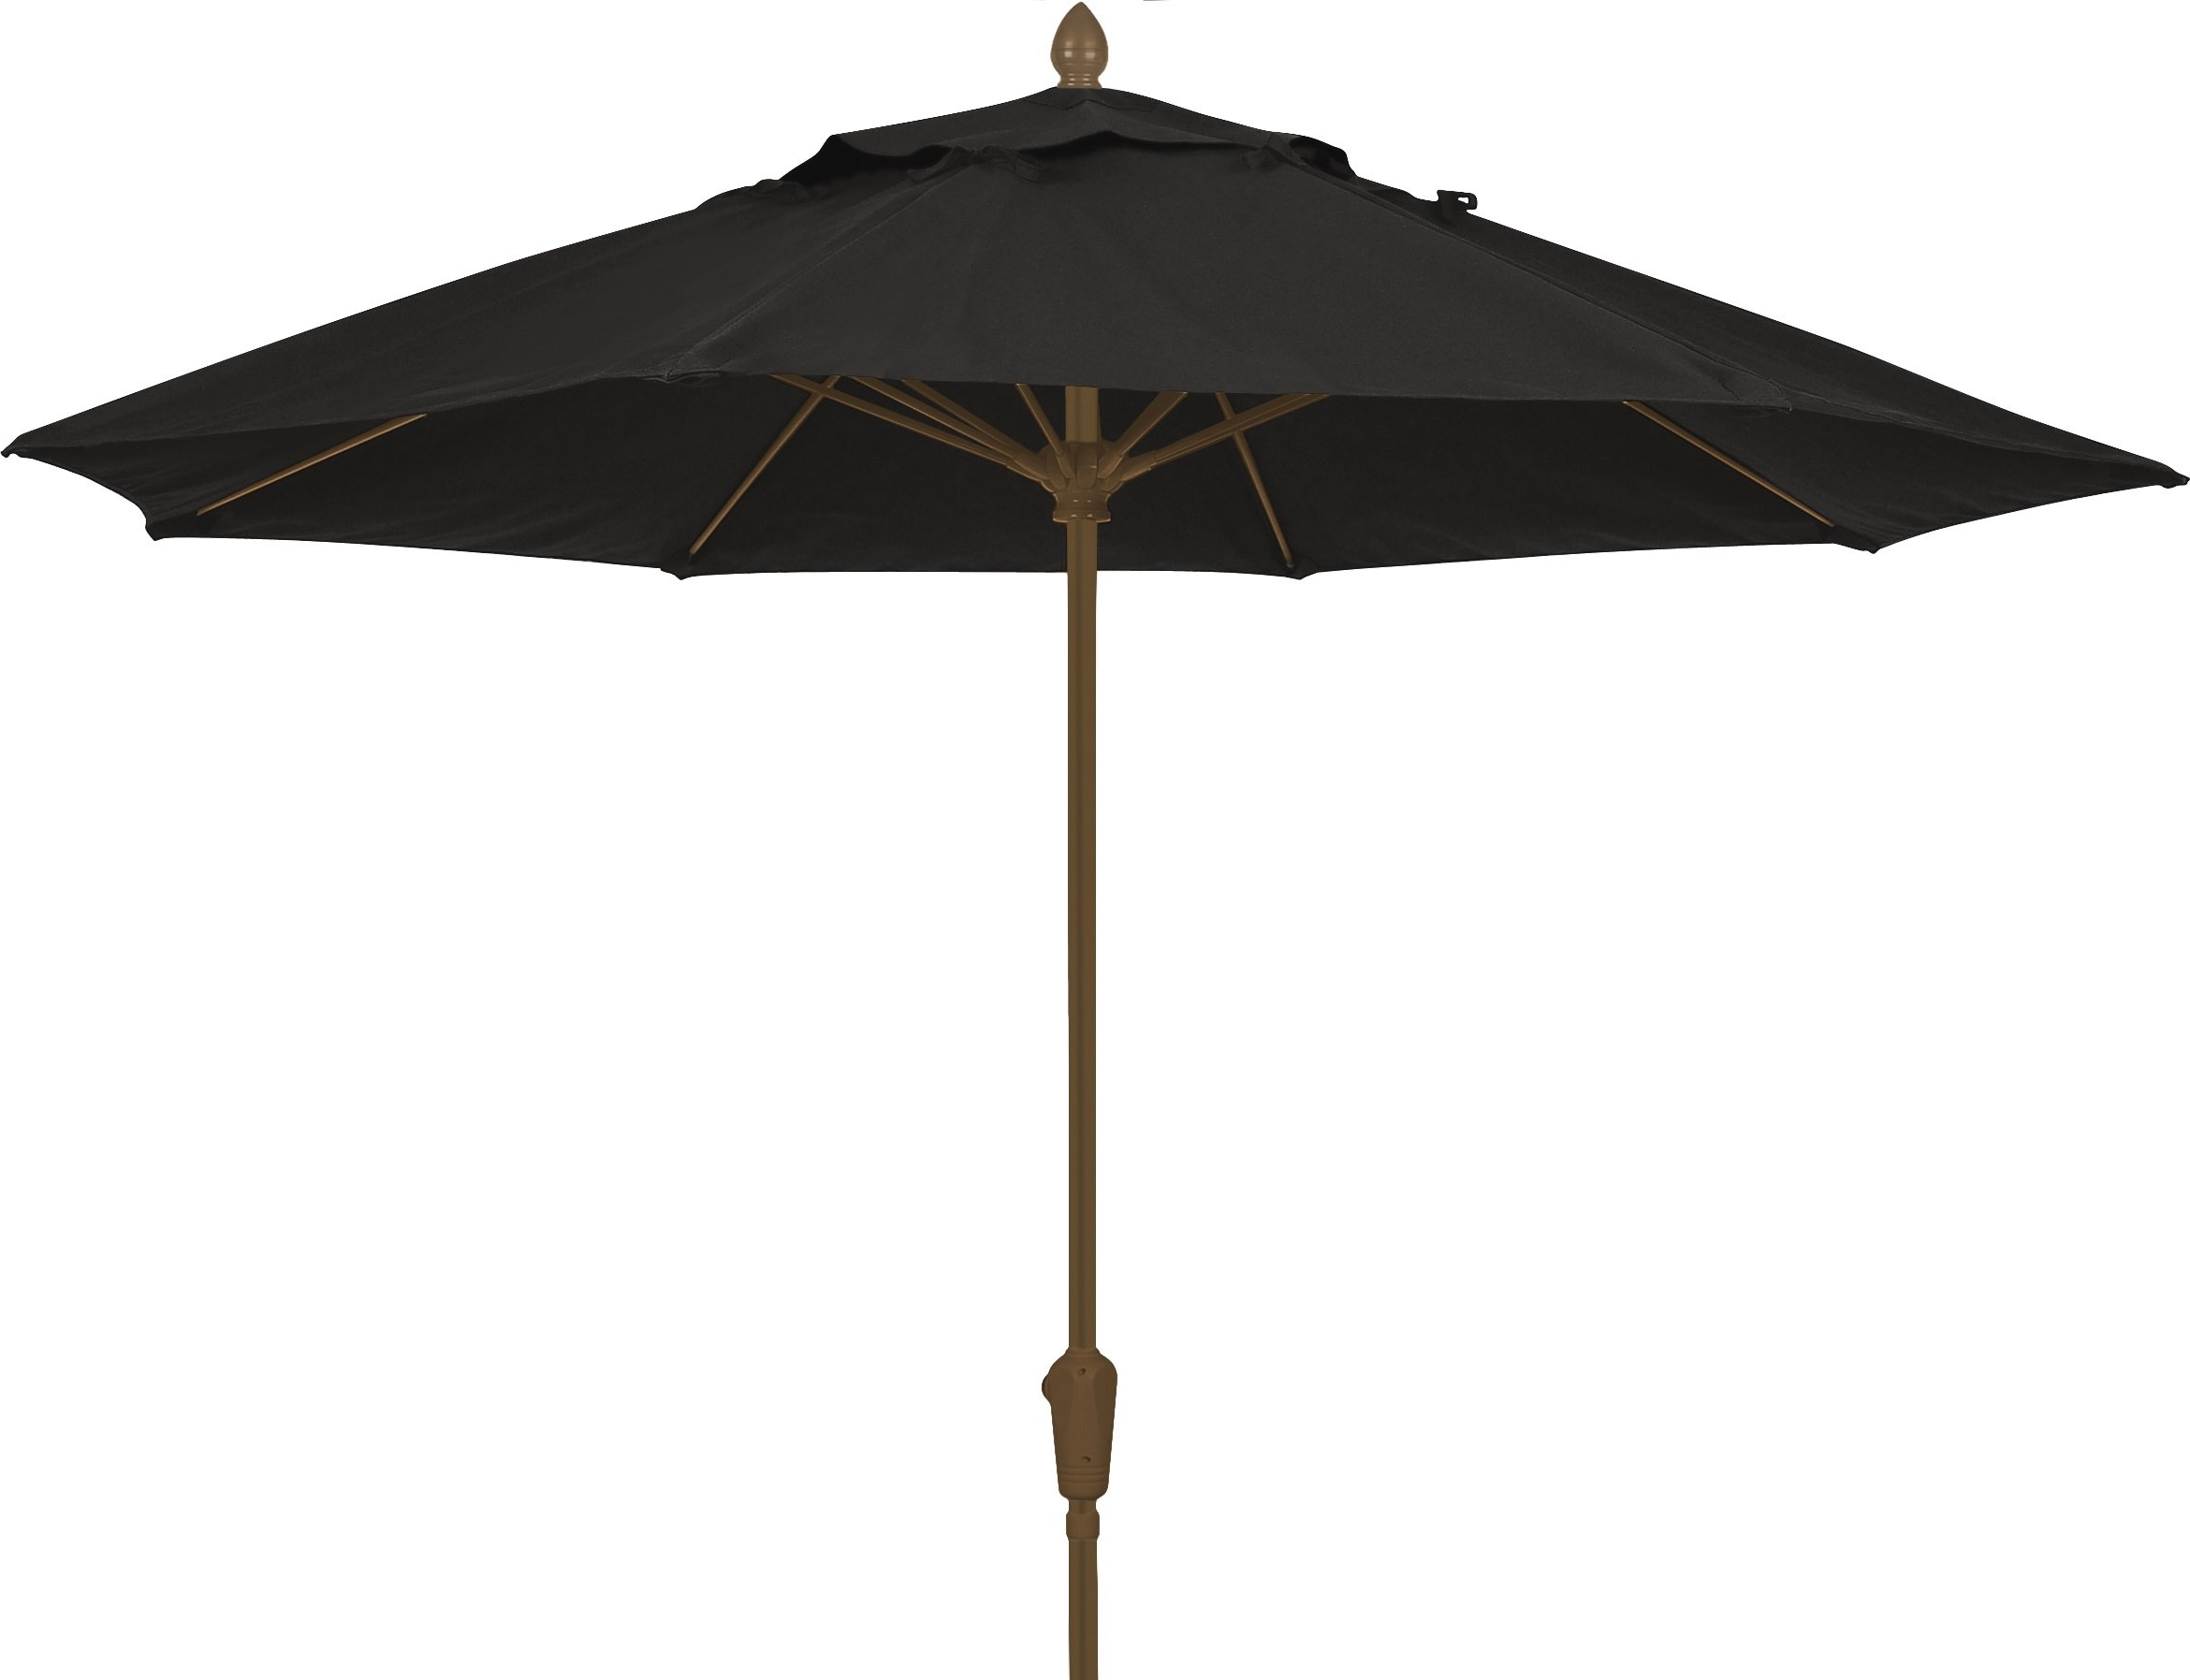 Widely Used Julian Market Sunbrella Umbrellas For Prestige 9' Market Sunbrella Umbrella (View 6 of 20)